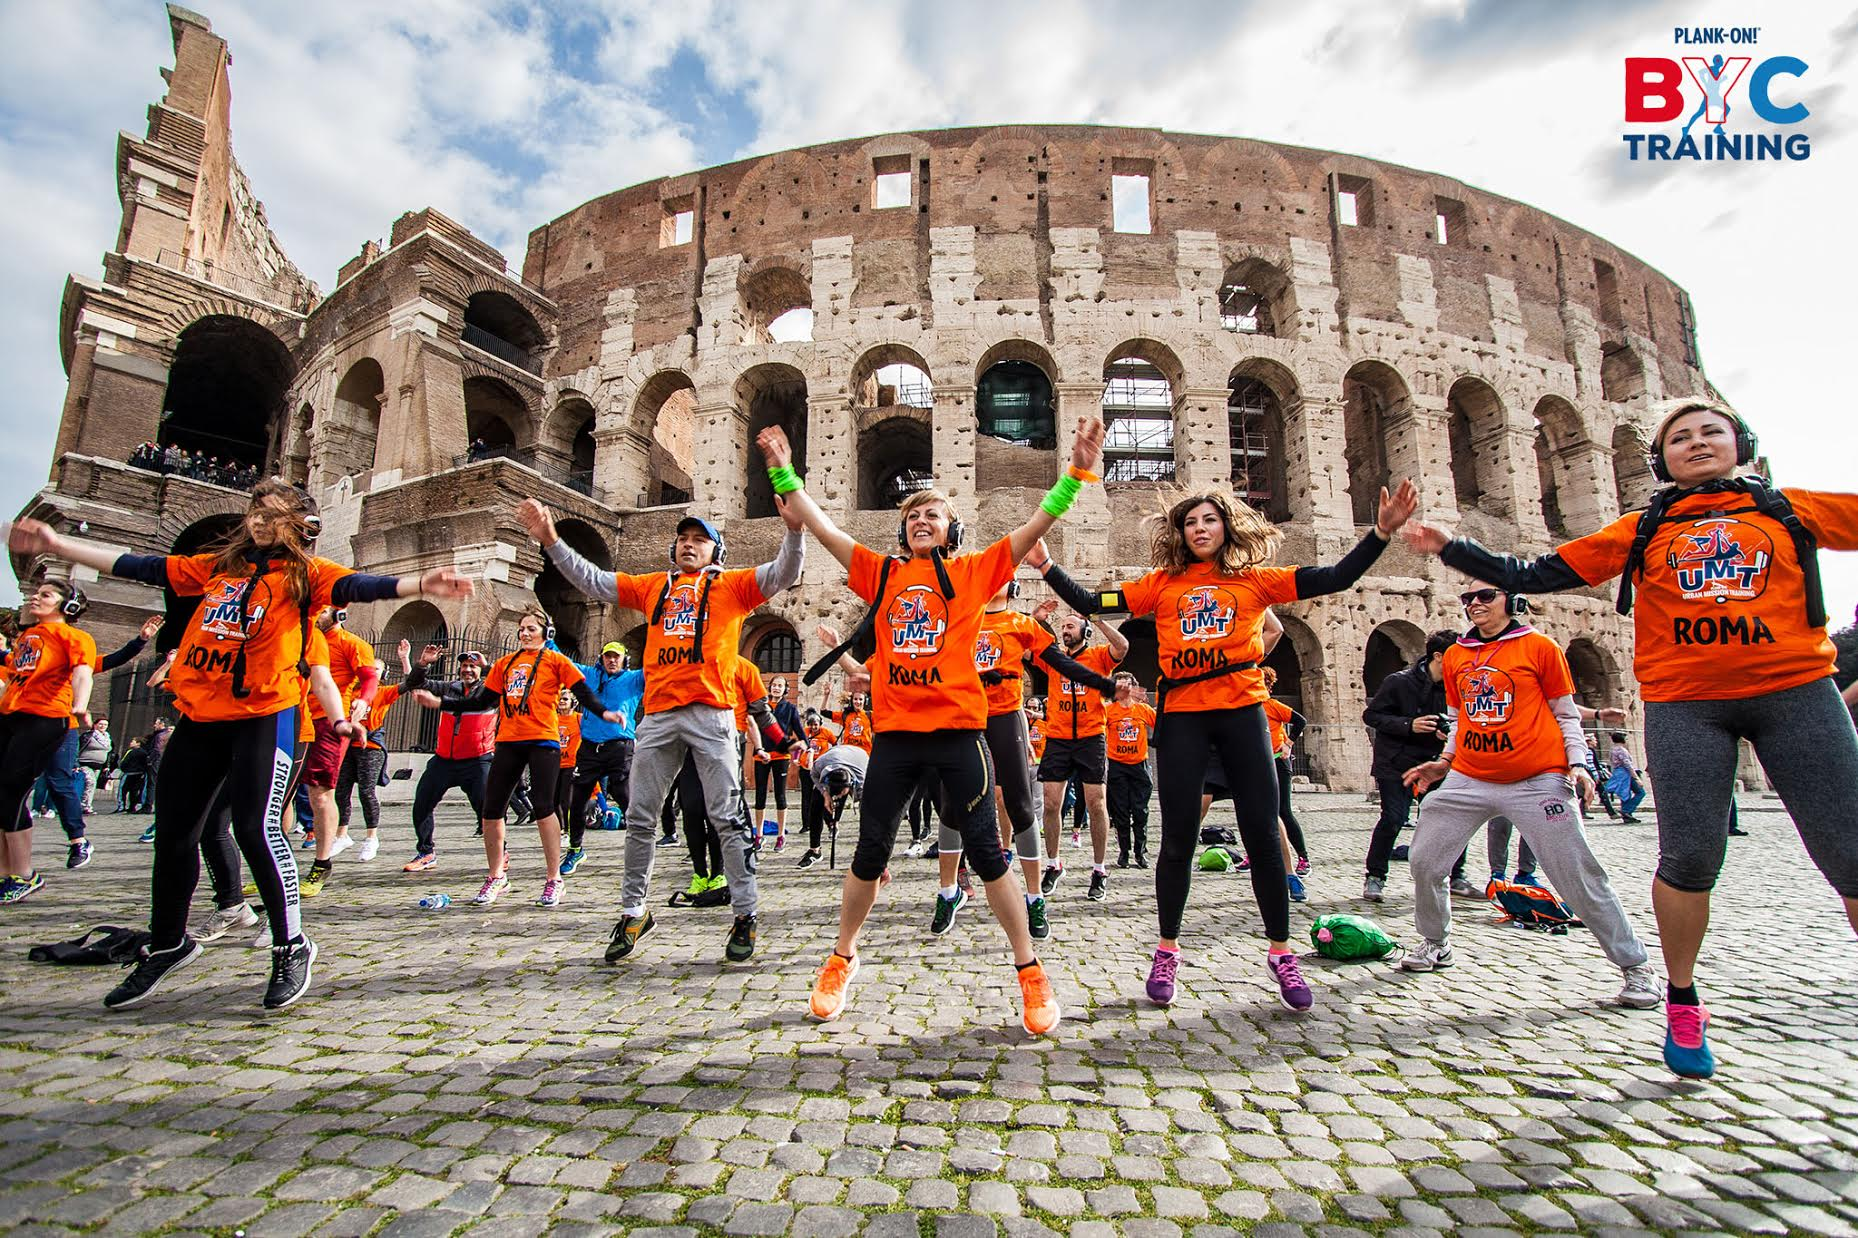 Torna a Roma il 29 aprile l'allenamento urbano Plank-on! Believe in Your Core Training™